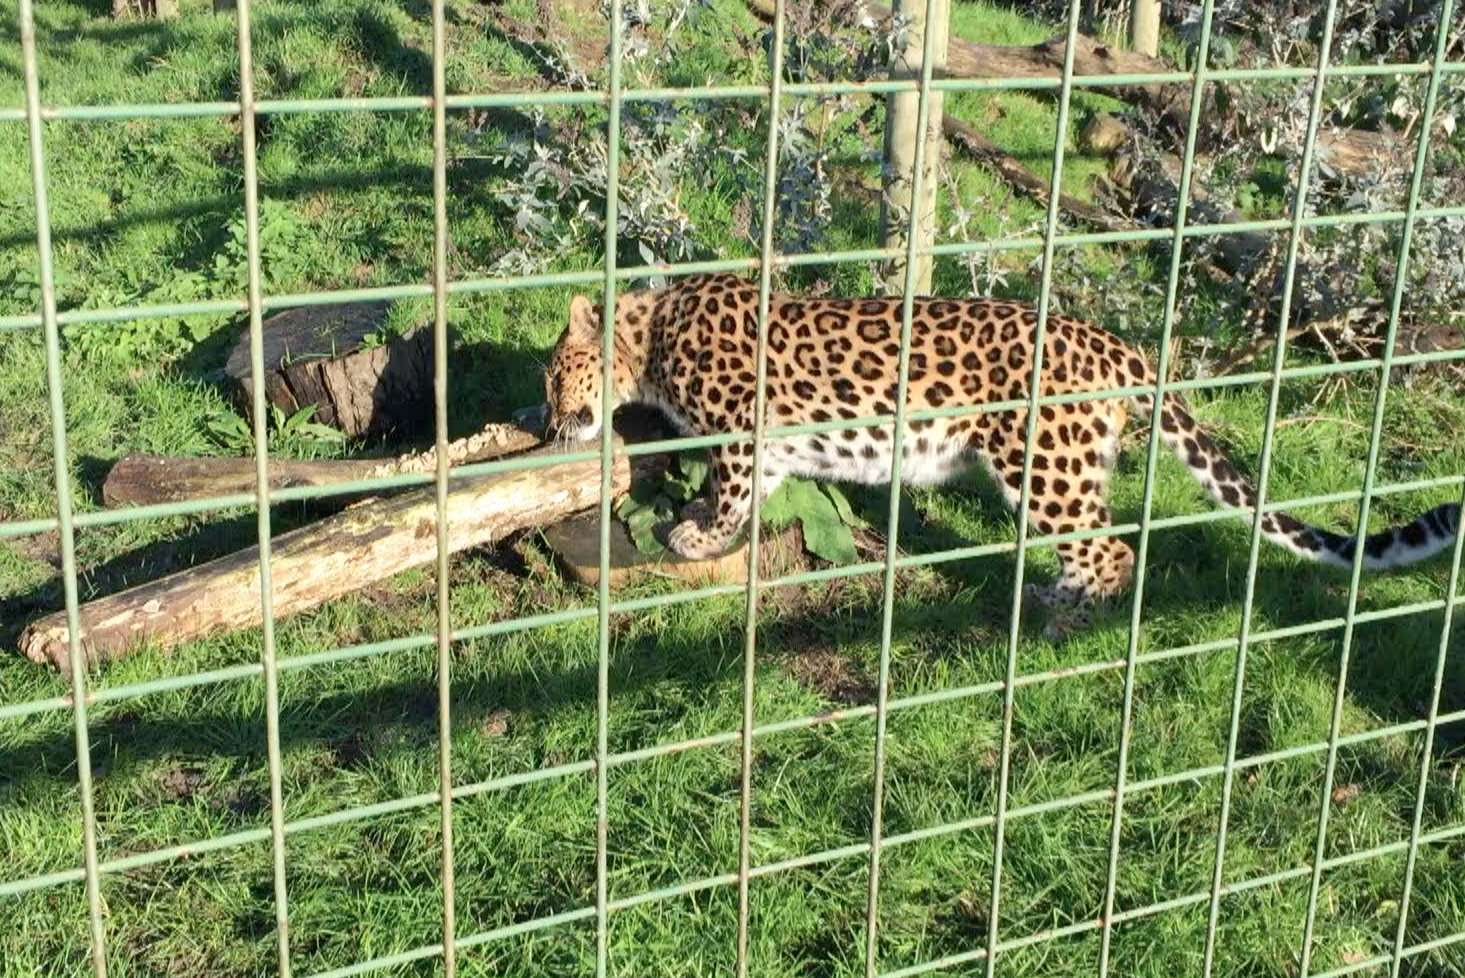 Artur the Amur Leopard having a sniff of Intimately Beckham